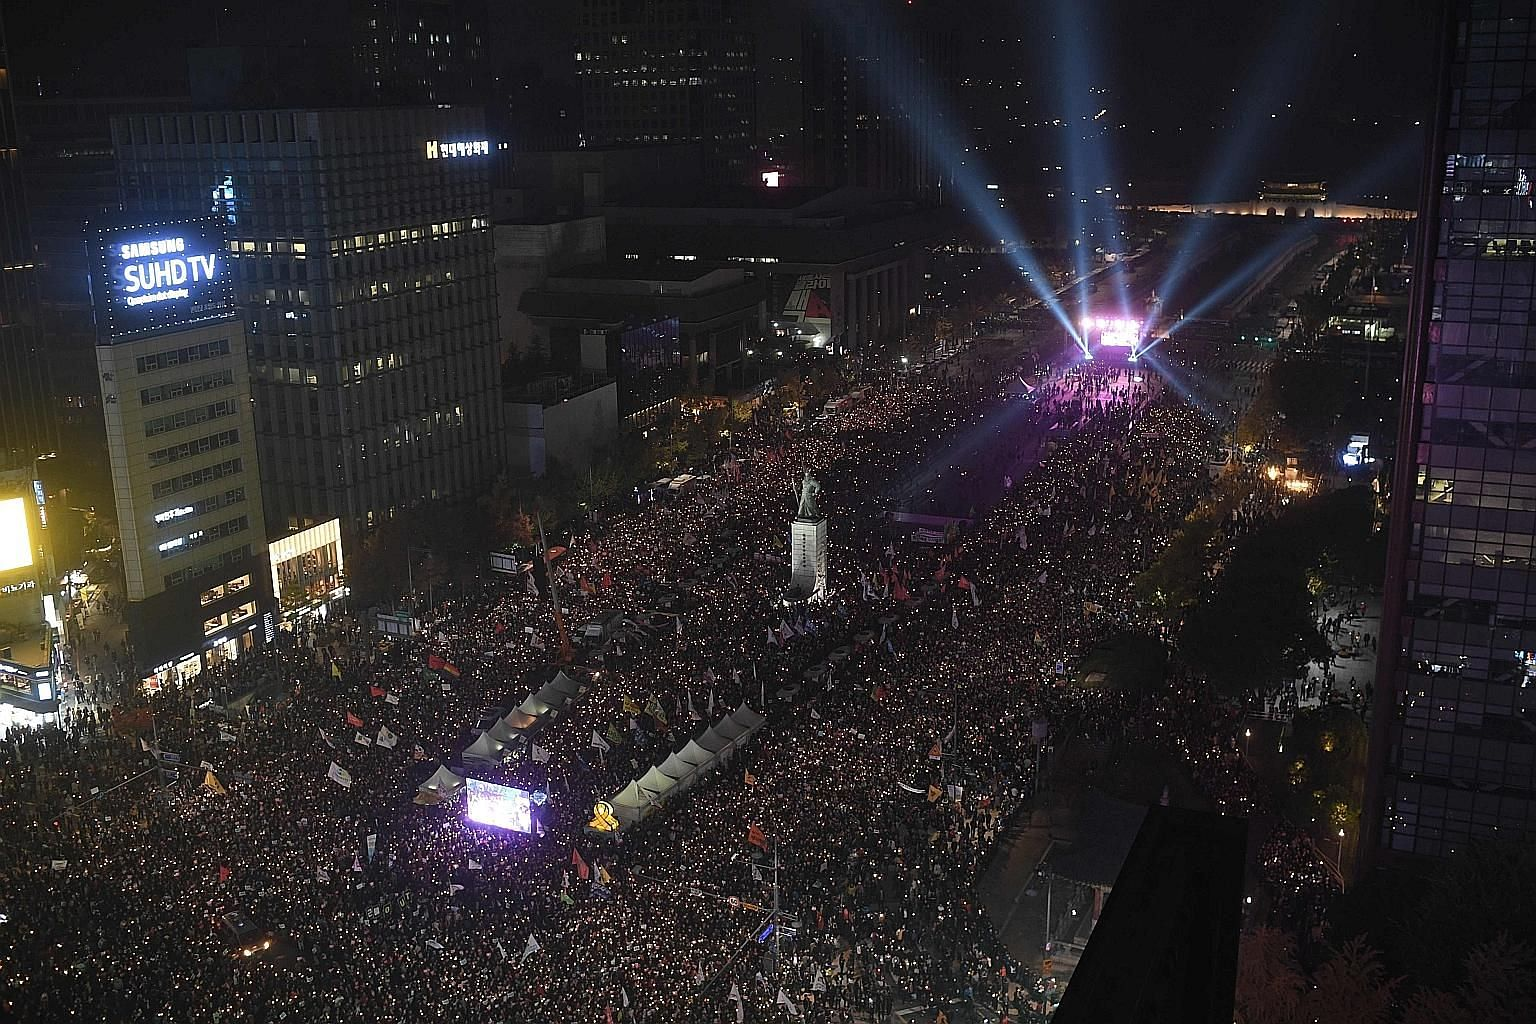 Police said more than 40,000 people attended the candlelight rally against President Park in Seoul last night - more than double the crowd at a similar anti-Park protest the week before.